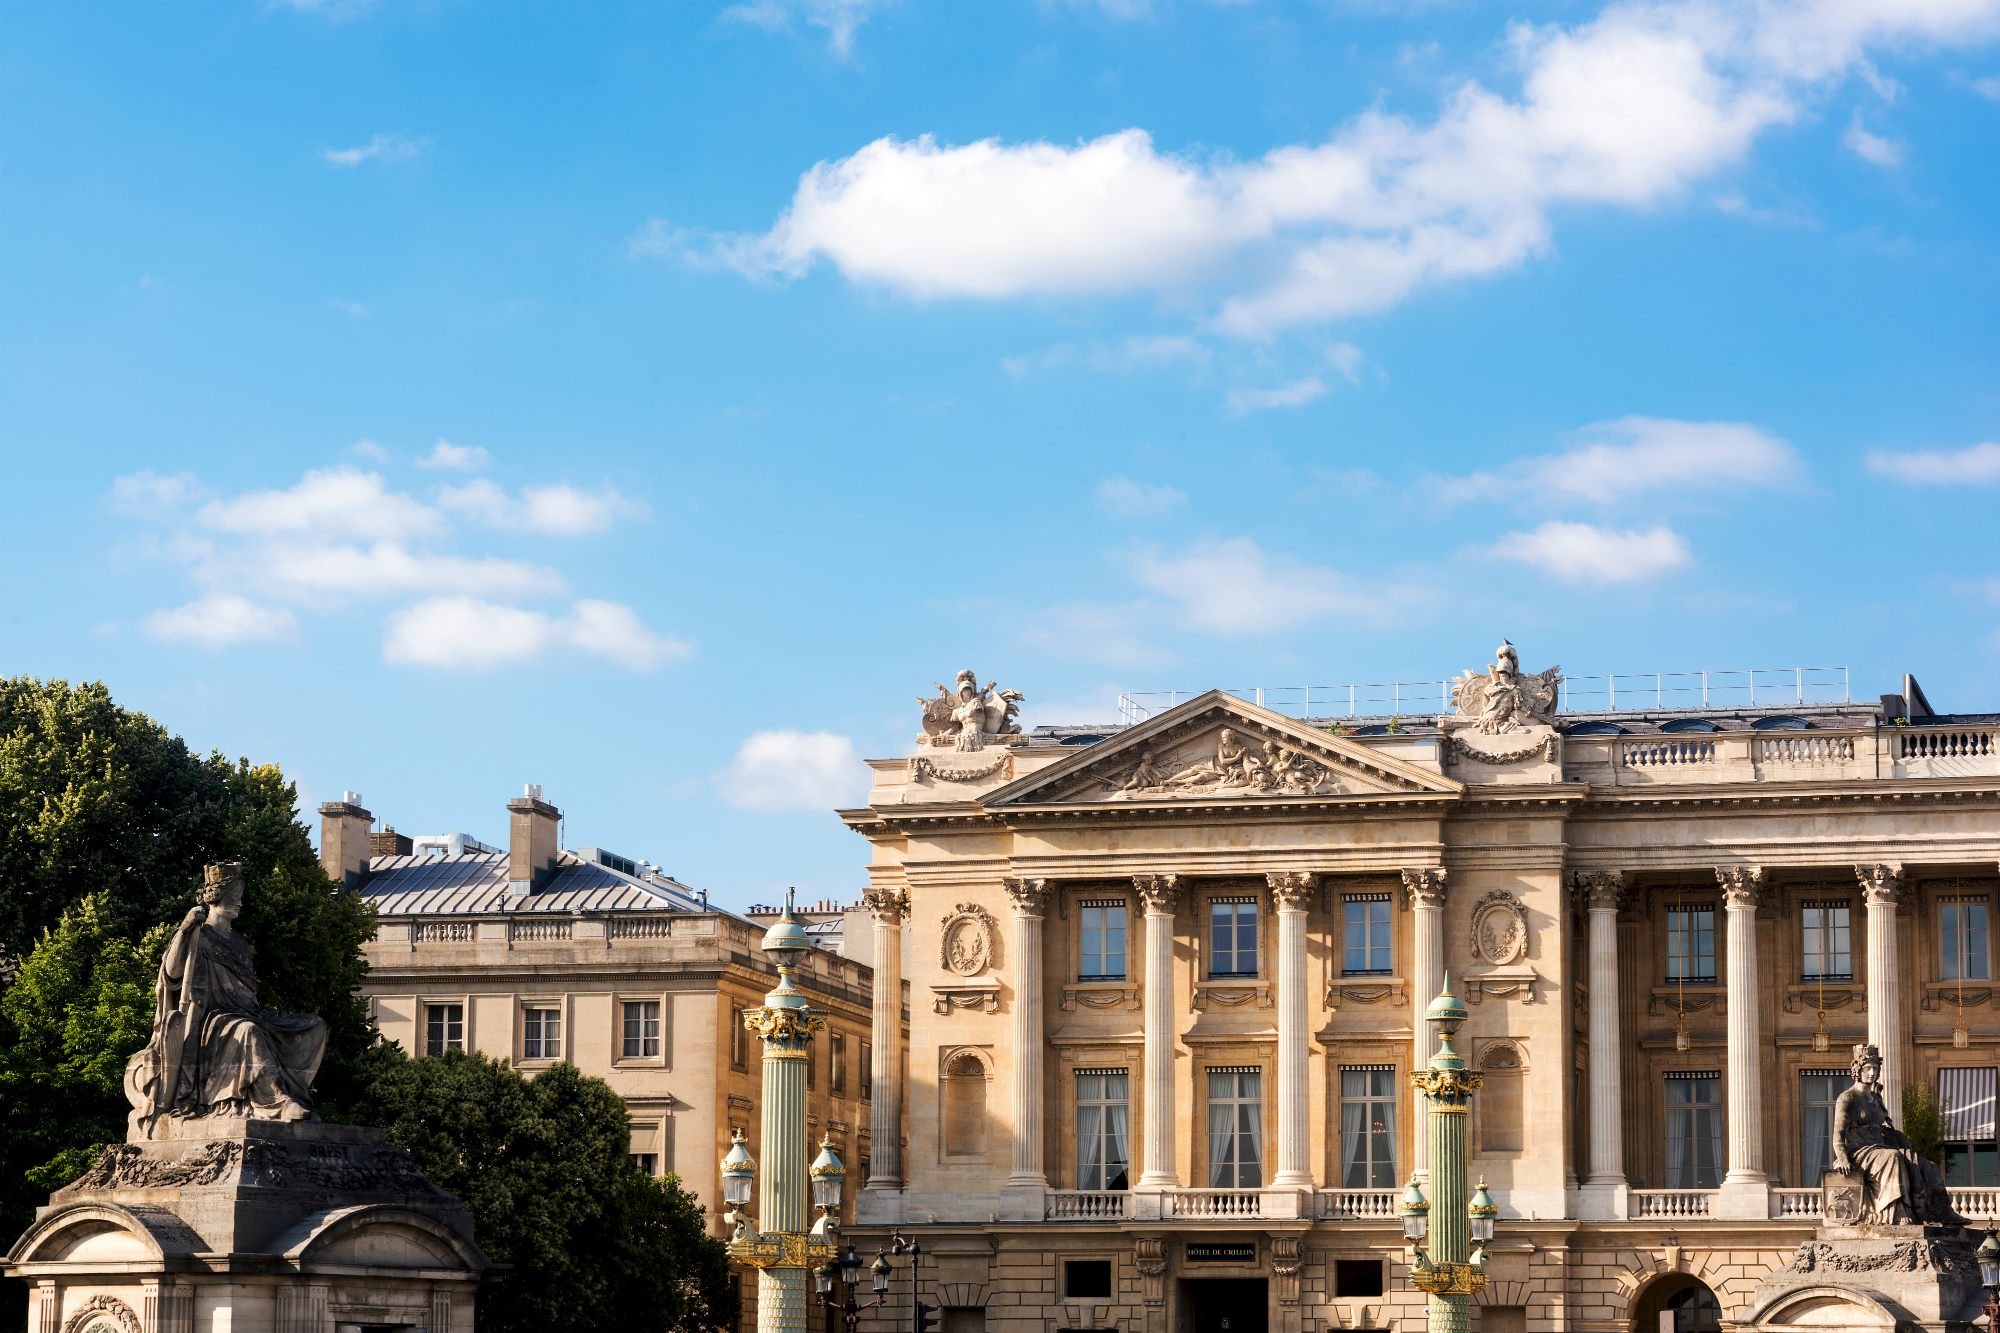 The iconic Hôtel de Crillon opens its doors after a four-year restoration